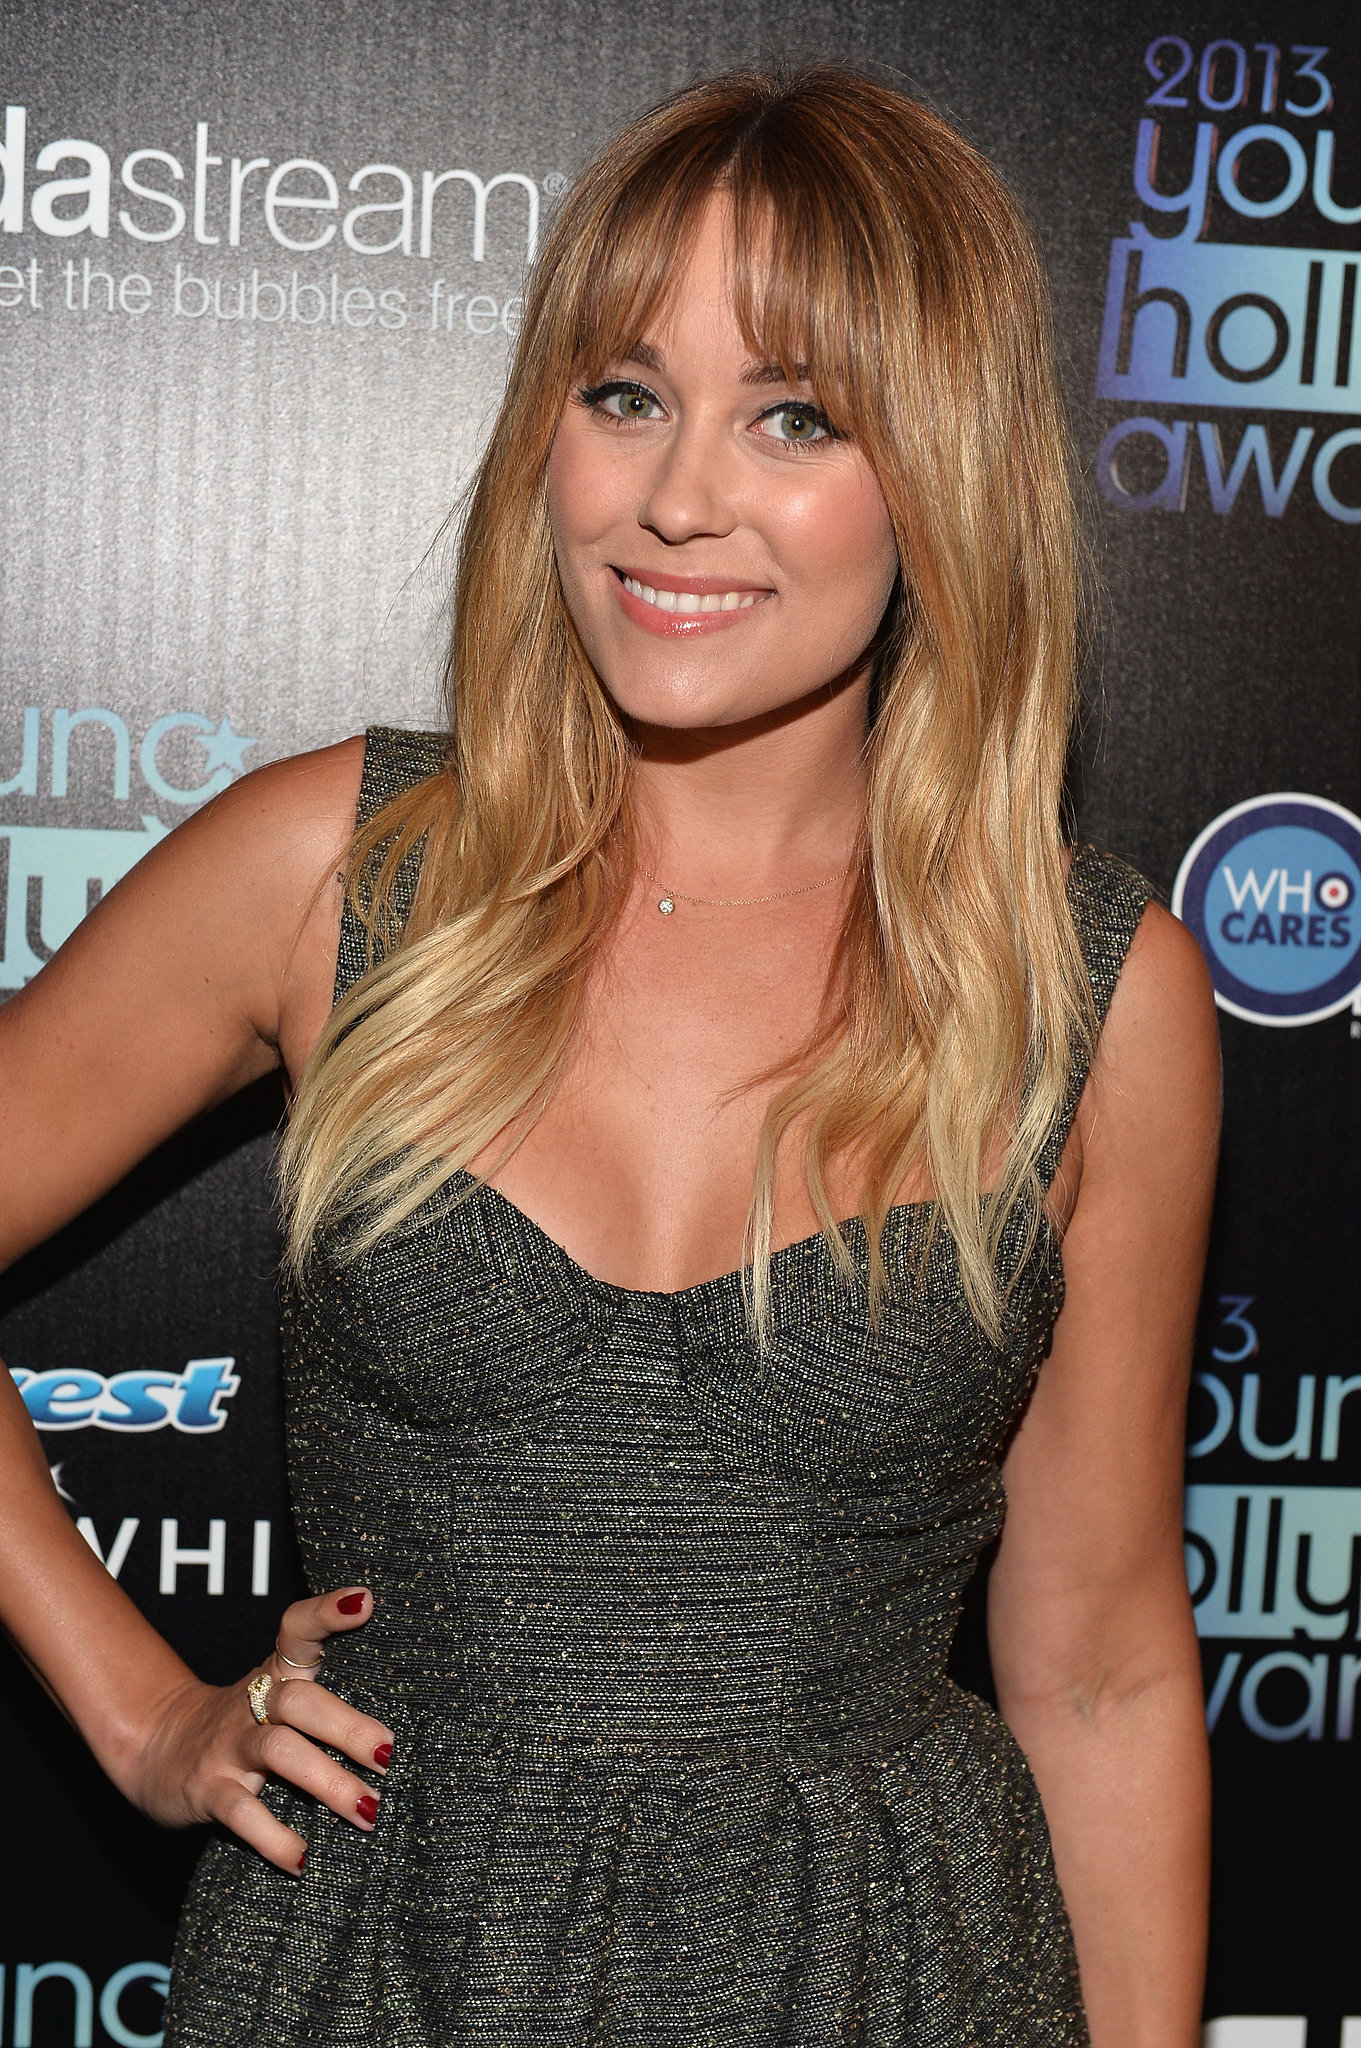 Think ombré is just for brunettes? Lauren Conrad blows that theory right out of the water with her gradient-blond hair.